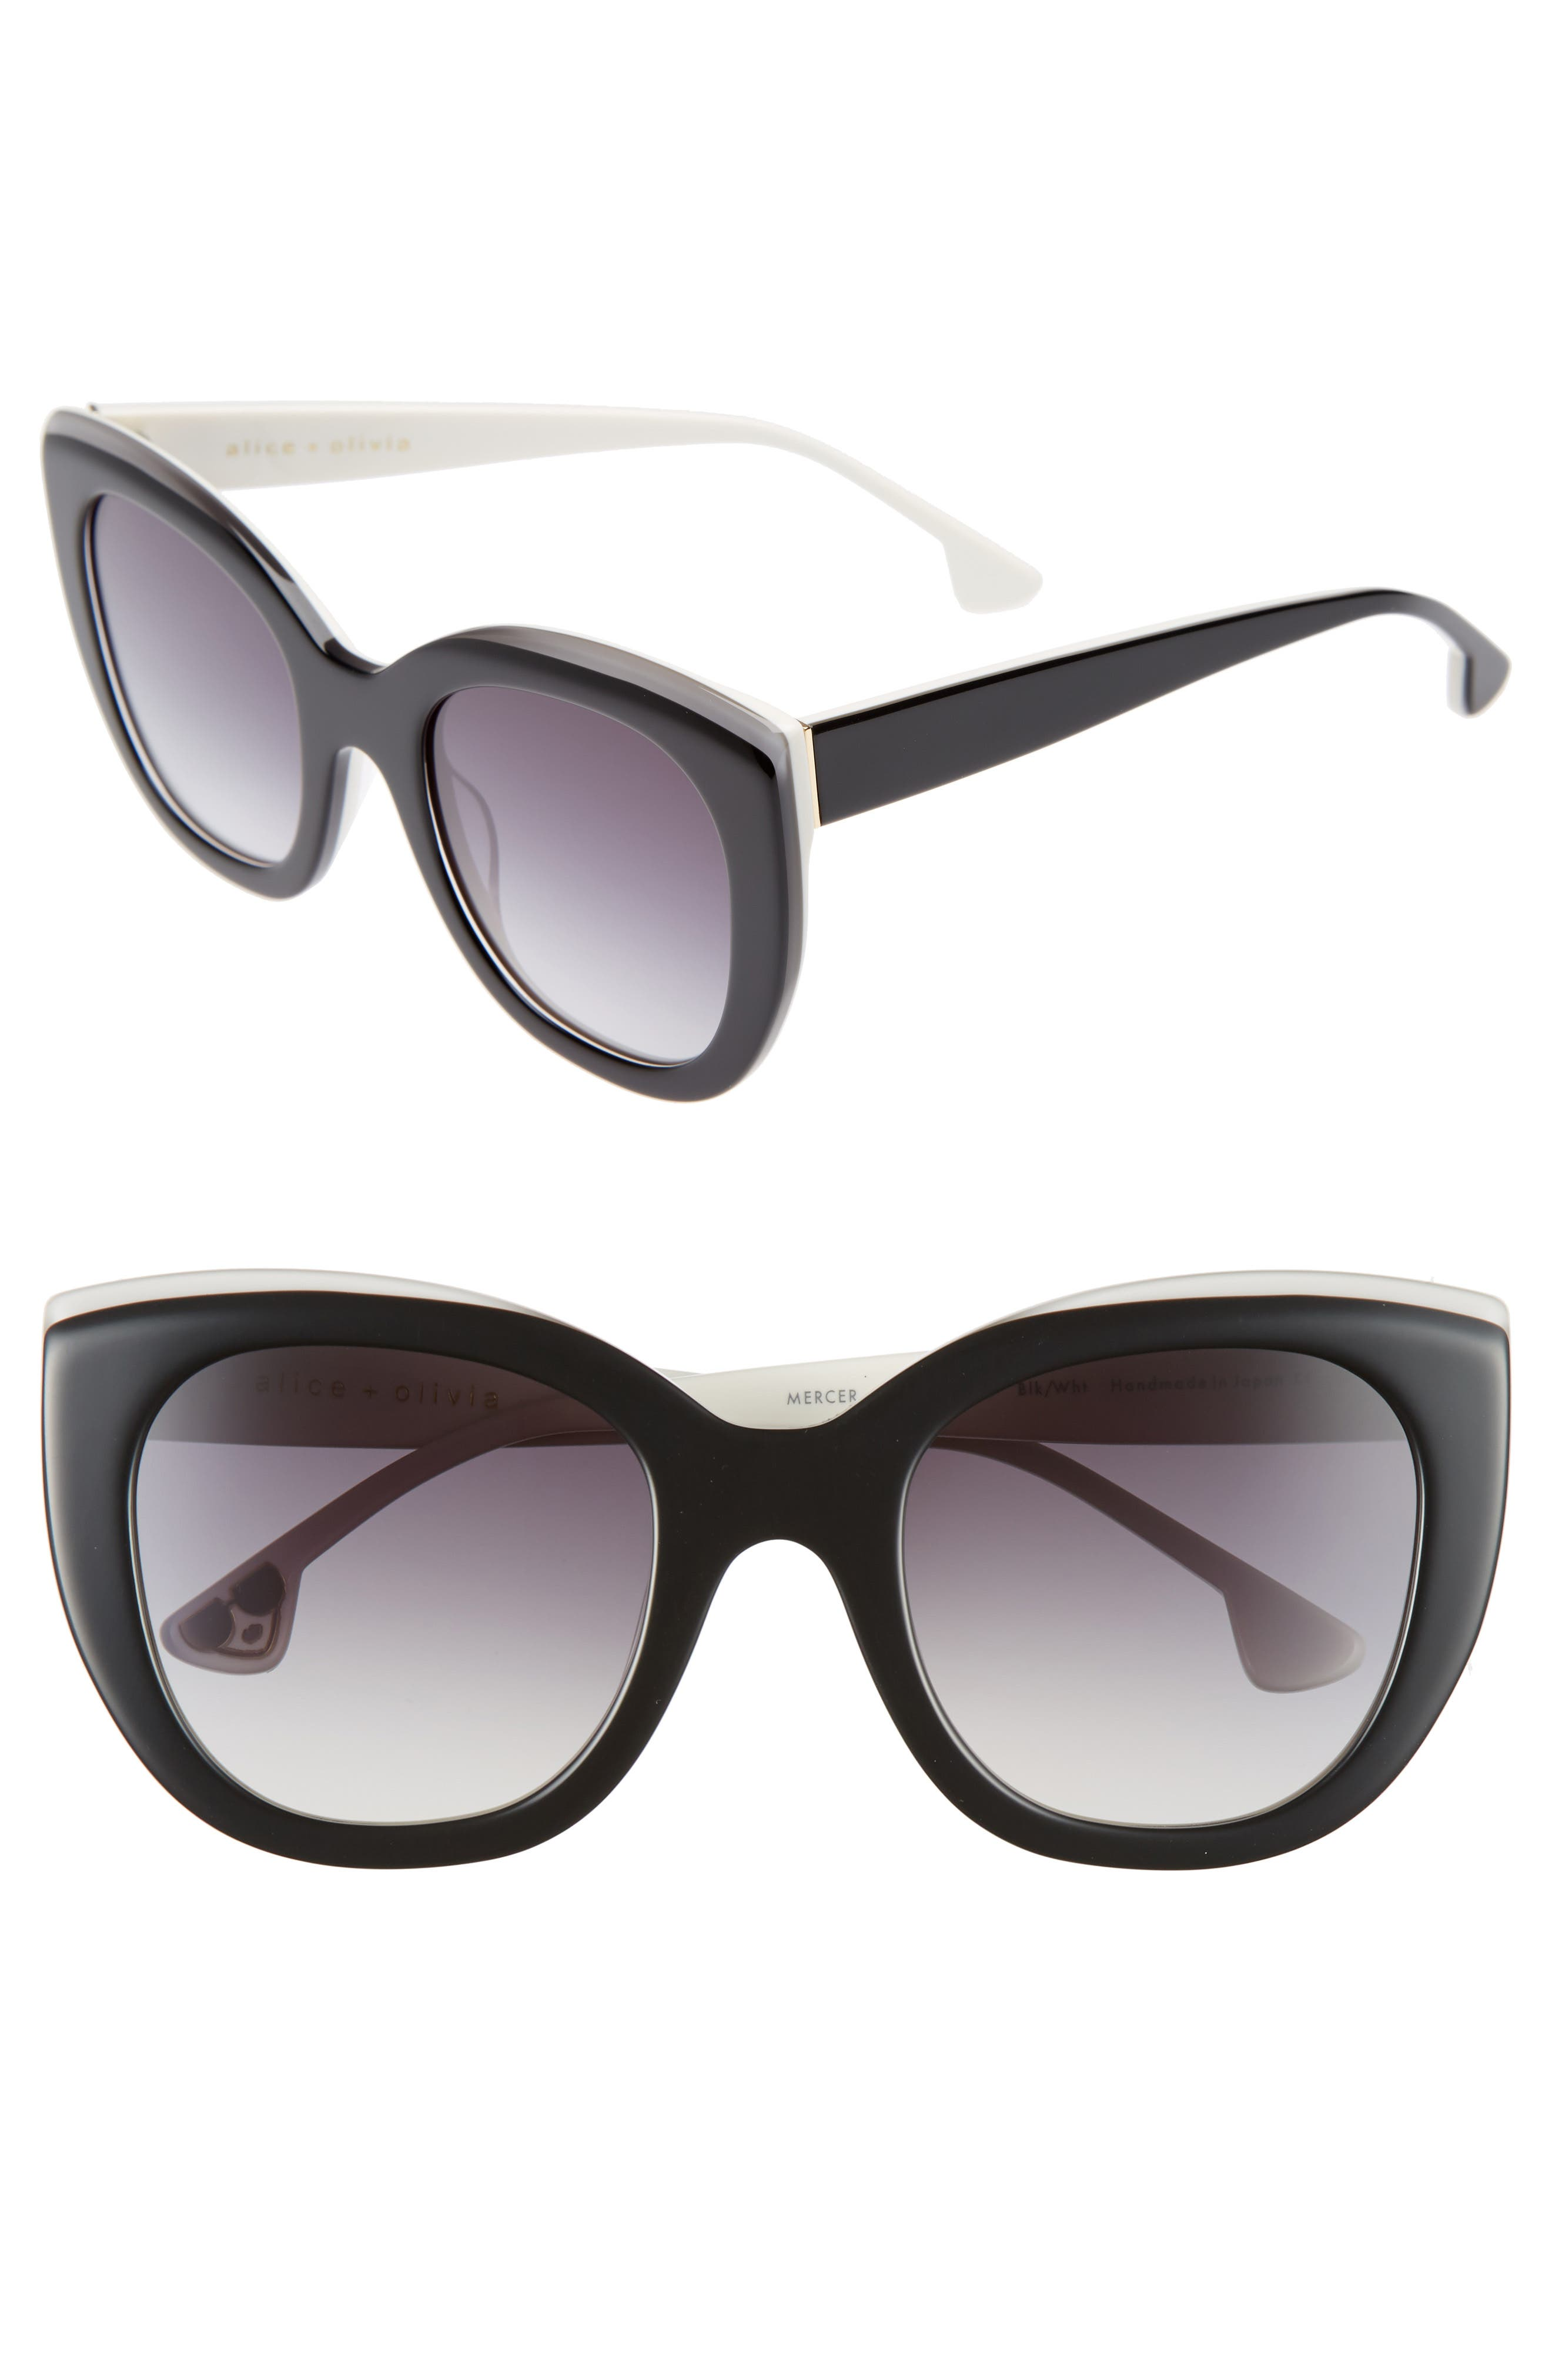 Mercer 52mm Cat Eye Sunglasses,                             Main thumbnail 1, color,